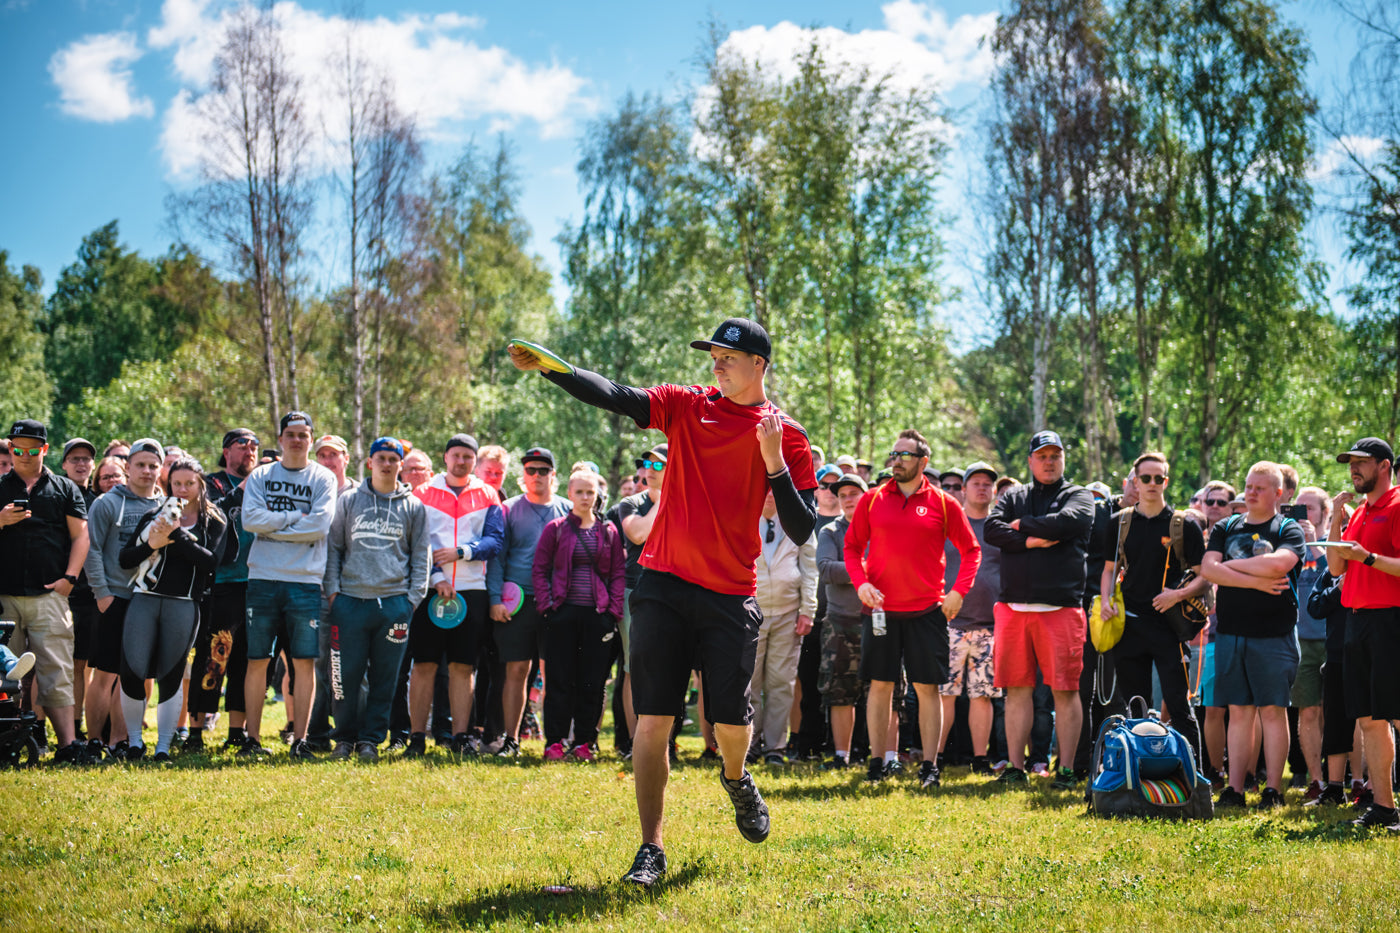 Simon Lizotte at the Tampere Disc Golf Center